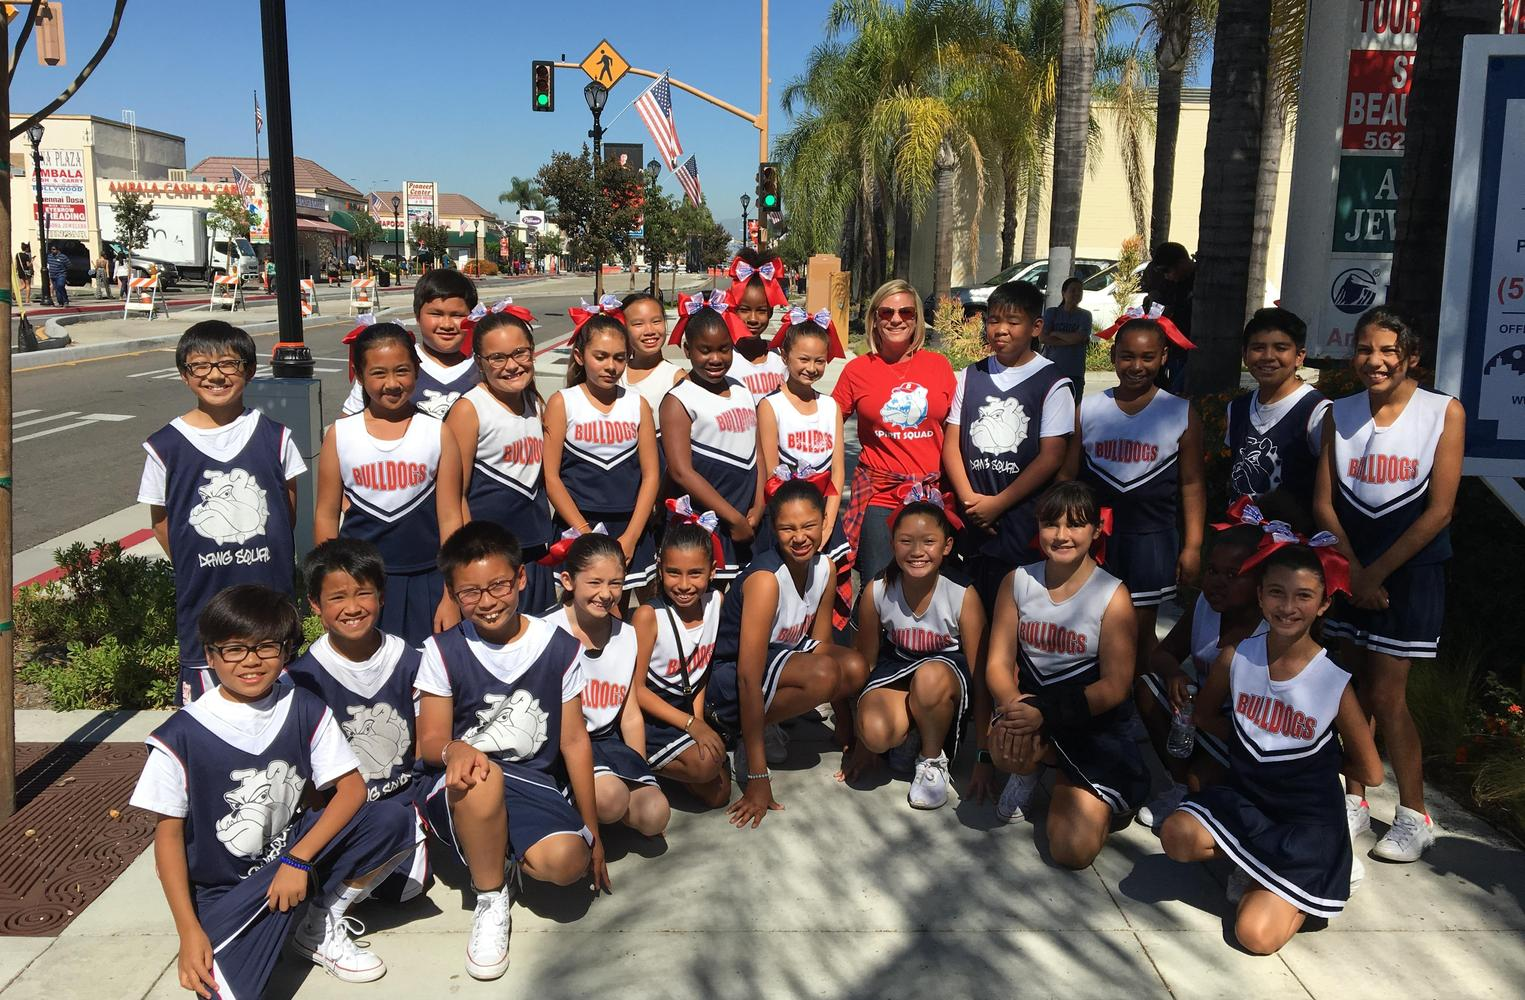 Burbank Cheerleading Team